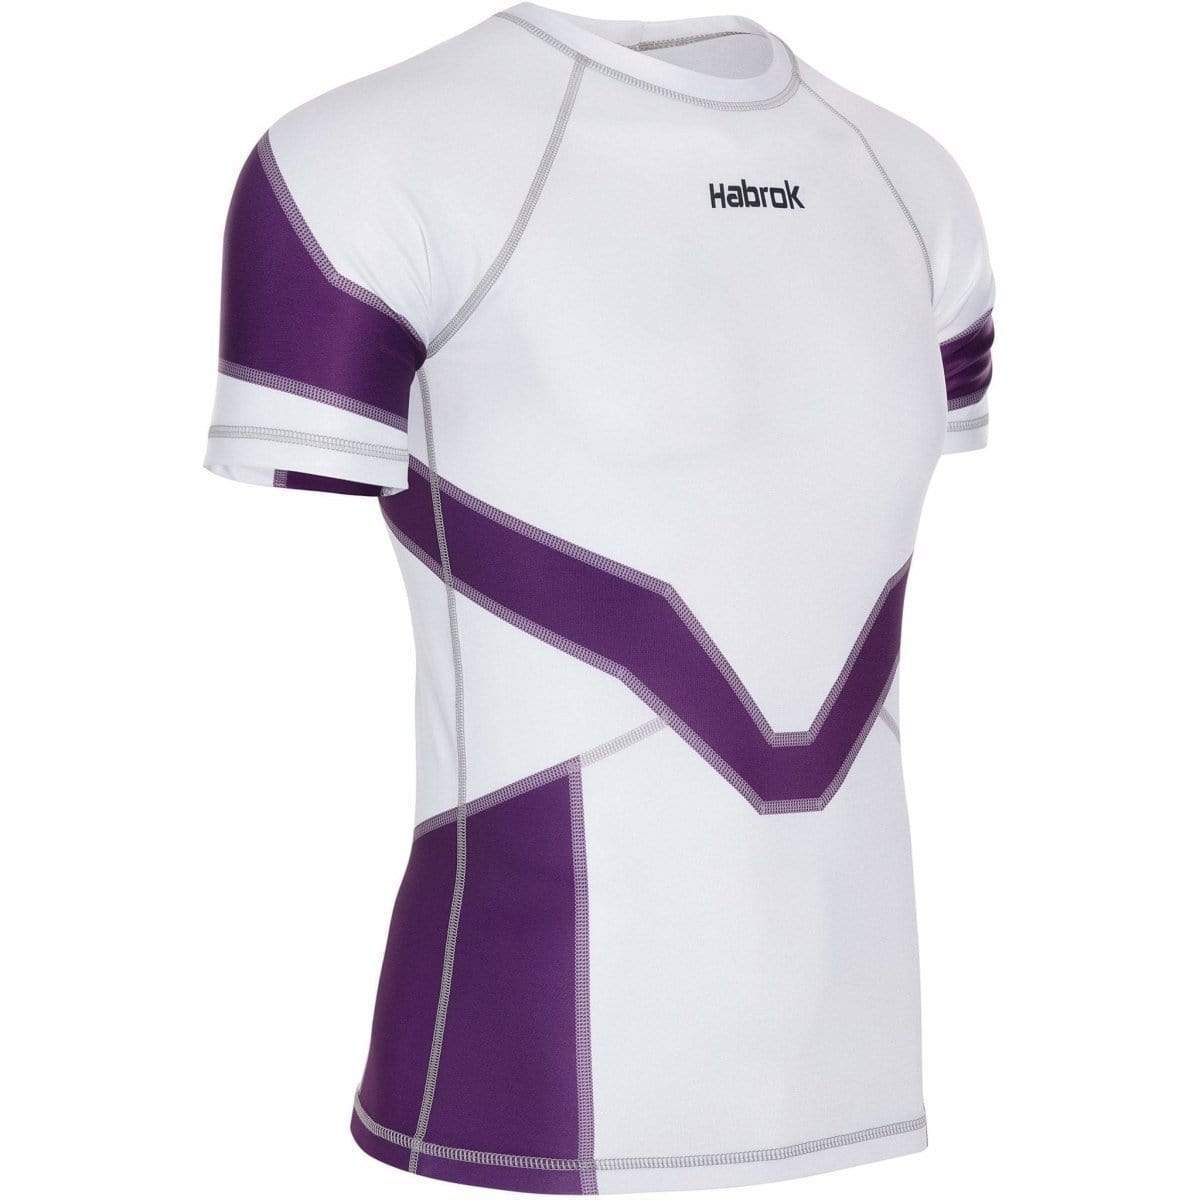 Habrok Rash Guard XS / PURPLE Transform 2.0 | Ranked Rash Guard Women | Half Sleeve